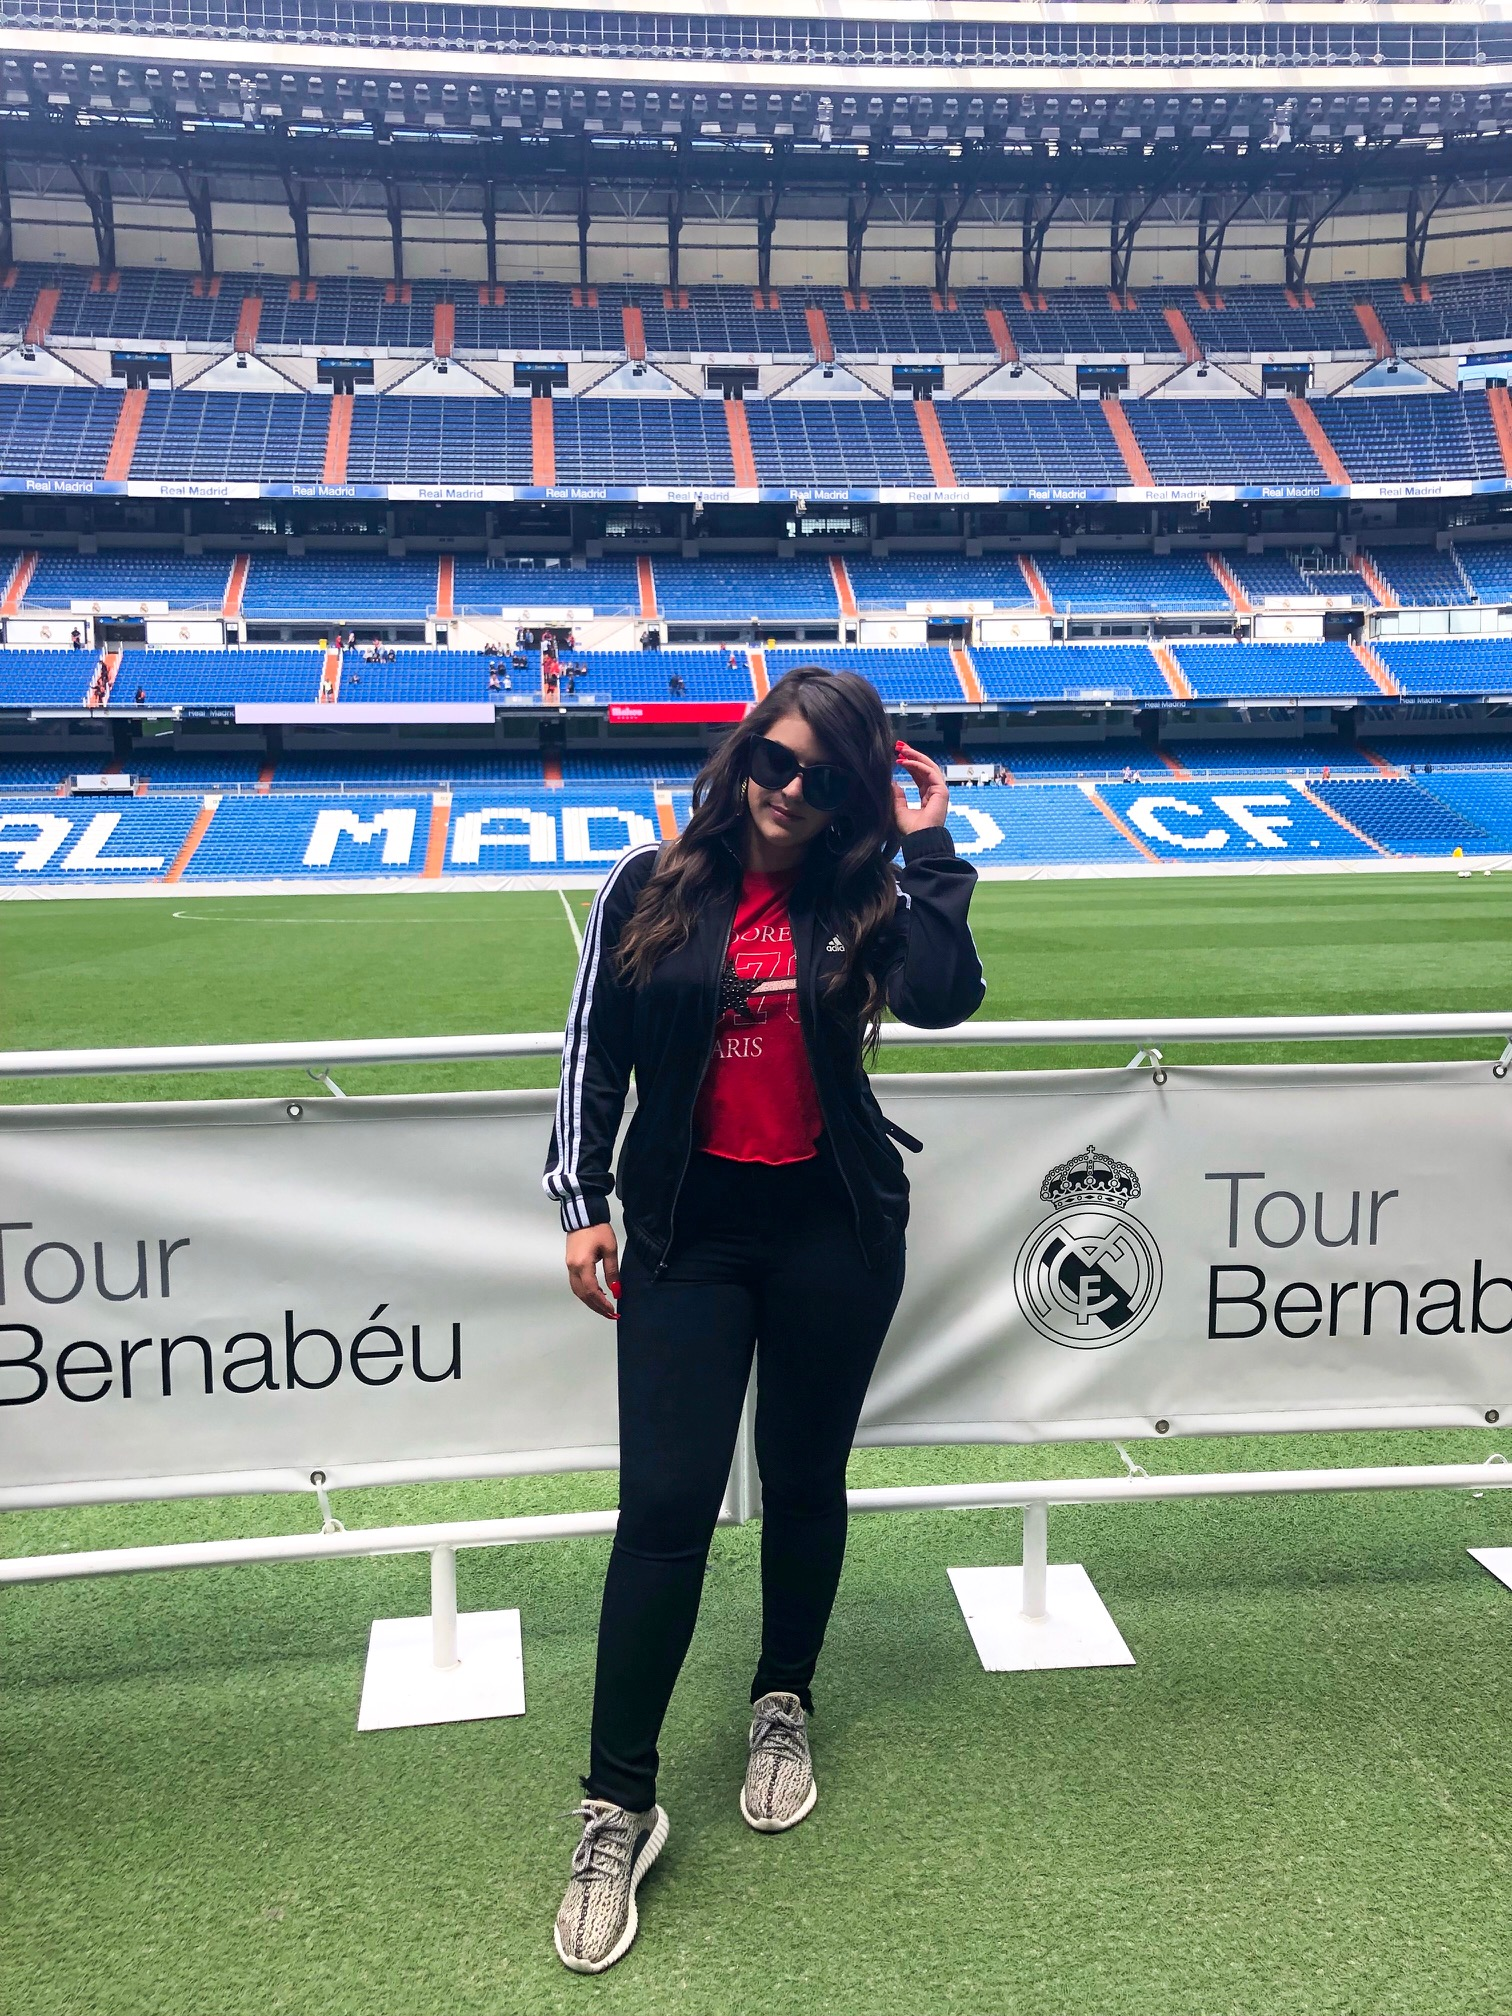 Santiago Bernabeu Stadium - Madrid Spain - Real Madrid - Beyond Casual B